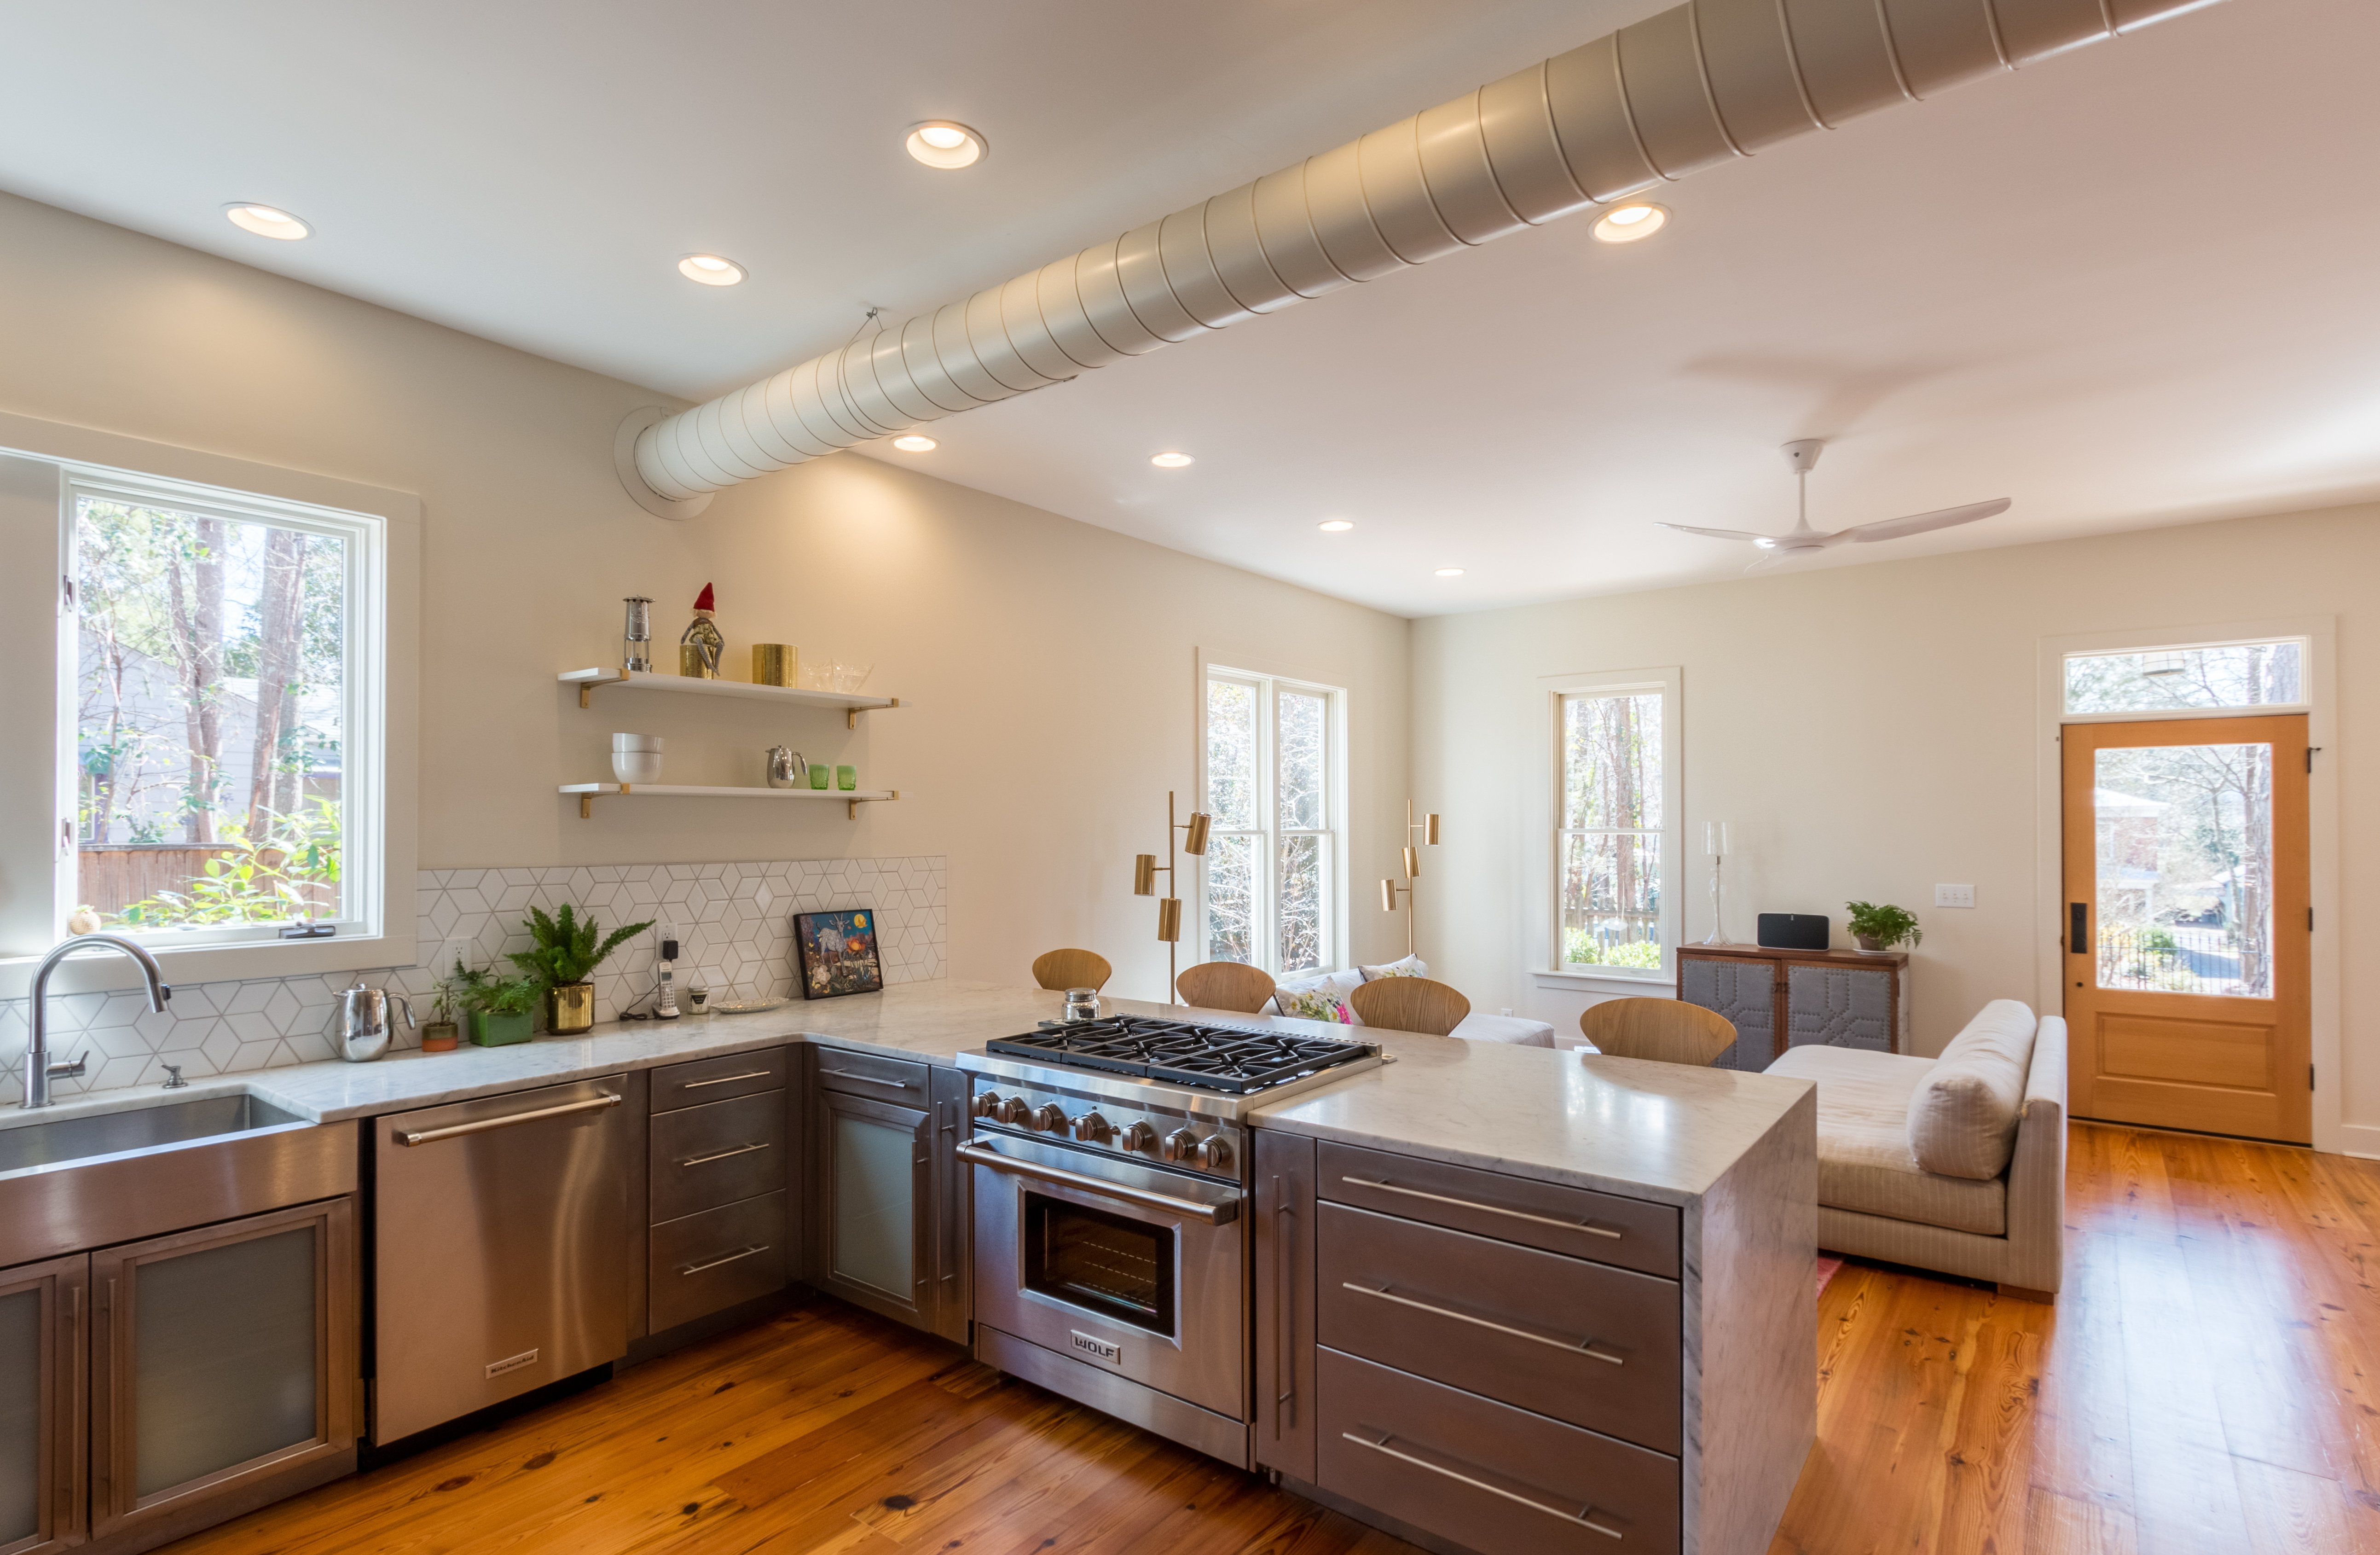 kitchen and bath remodels athens ga